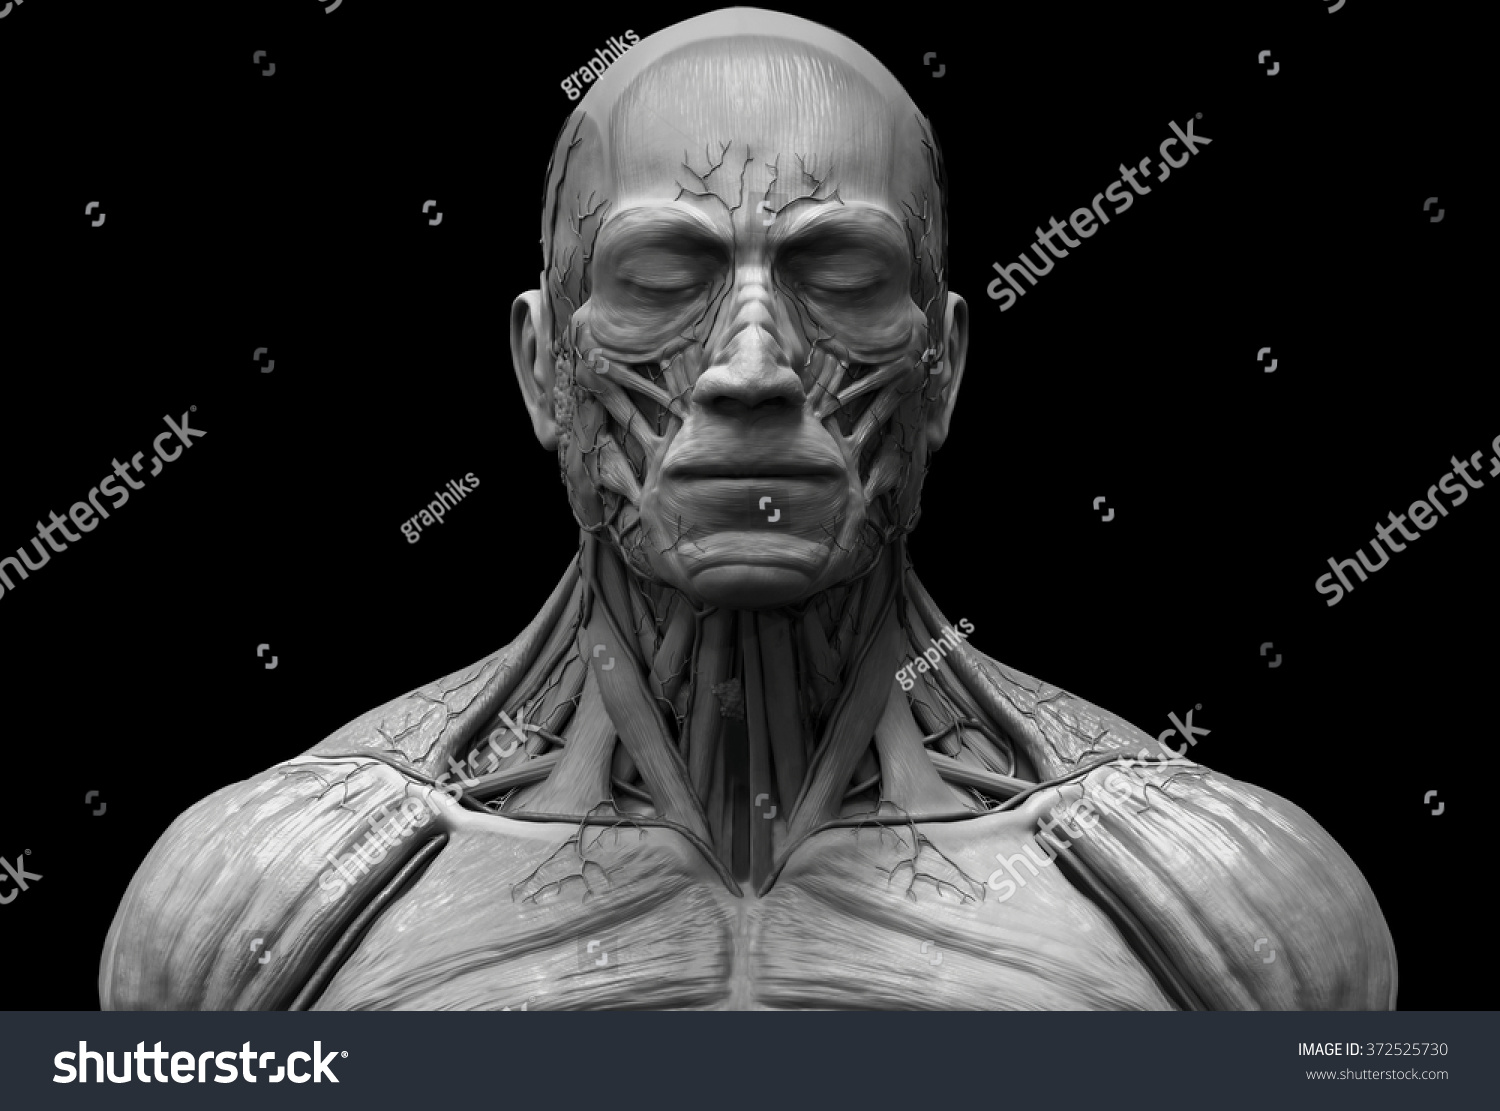 Human Anatomy Muscle Anatomy Face Neck Stock Illustration 372525730 ...